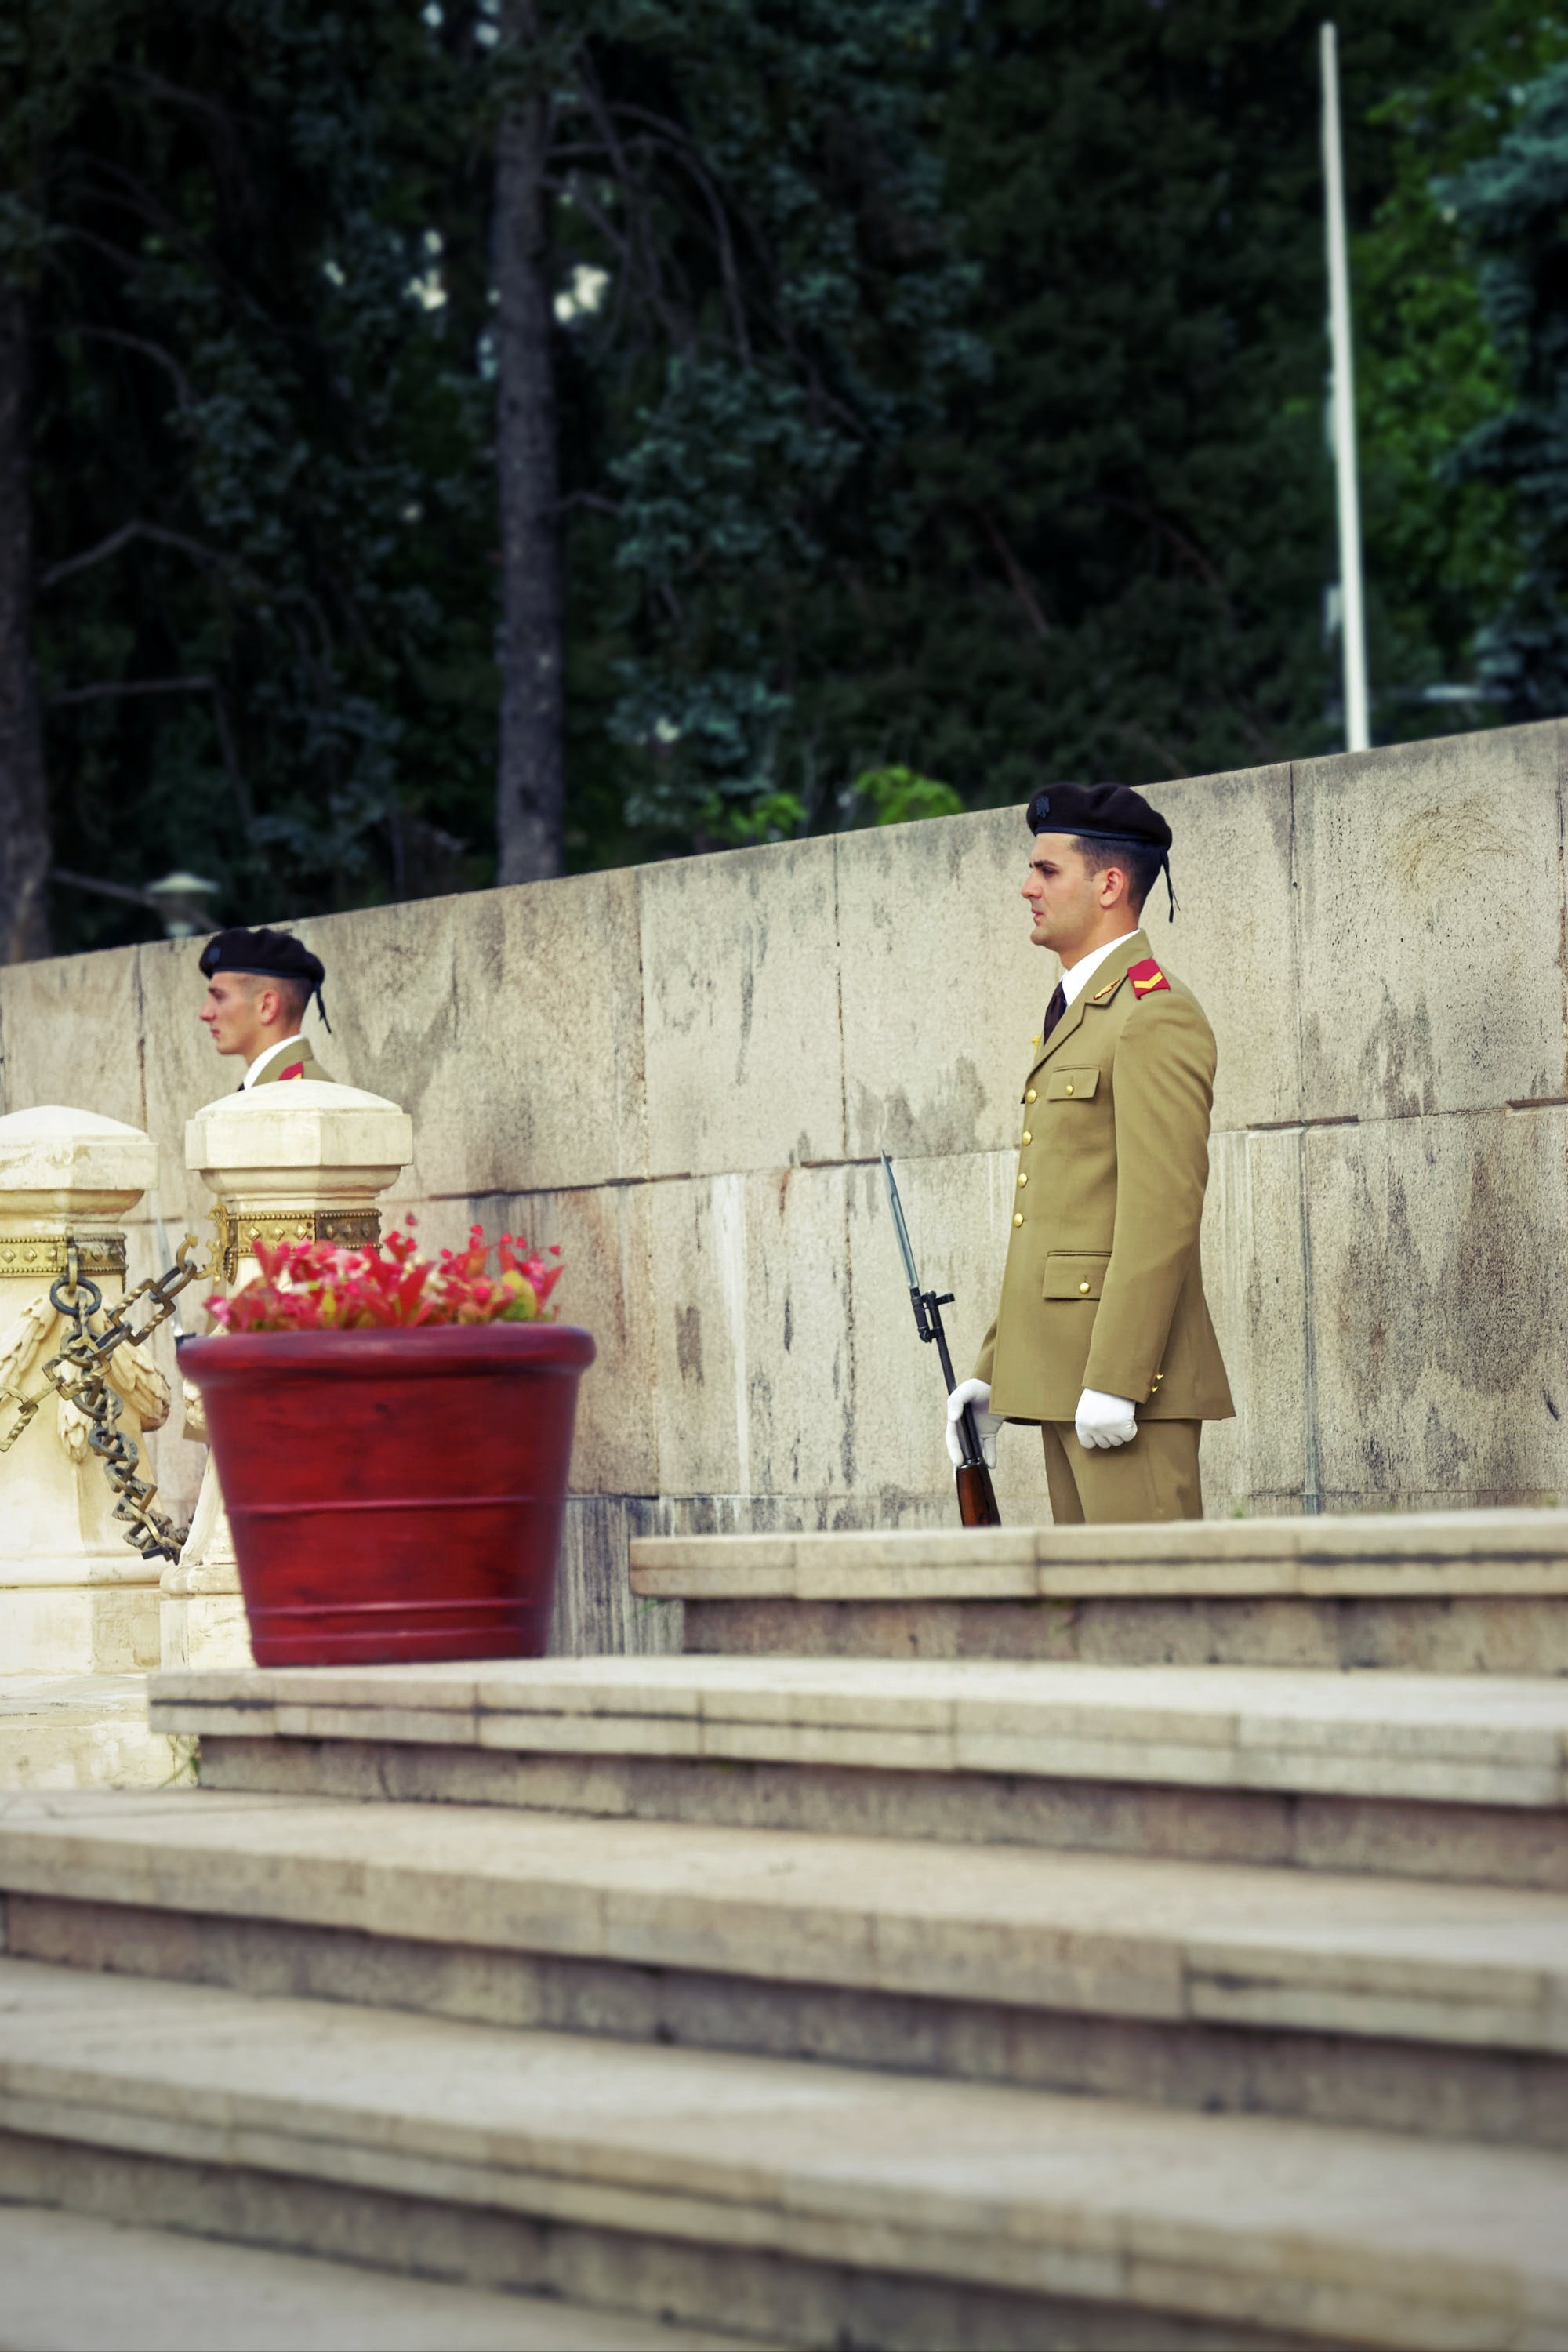 Free stock photo of concrete, flowers, guards in uniformes, guns